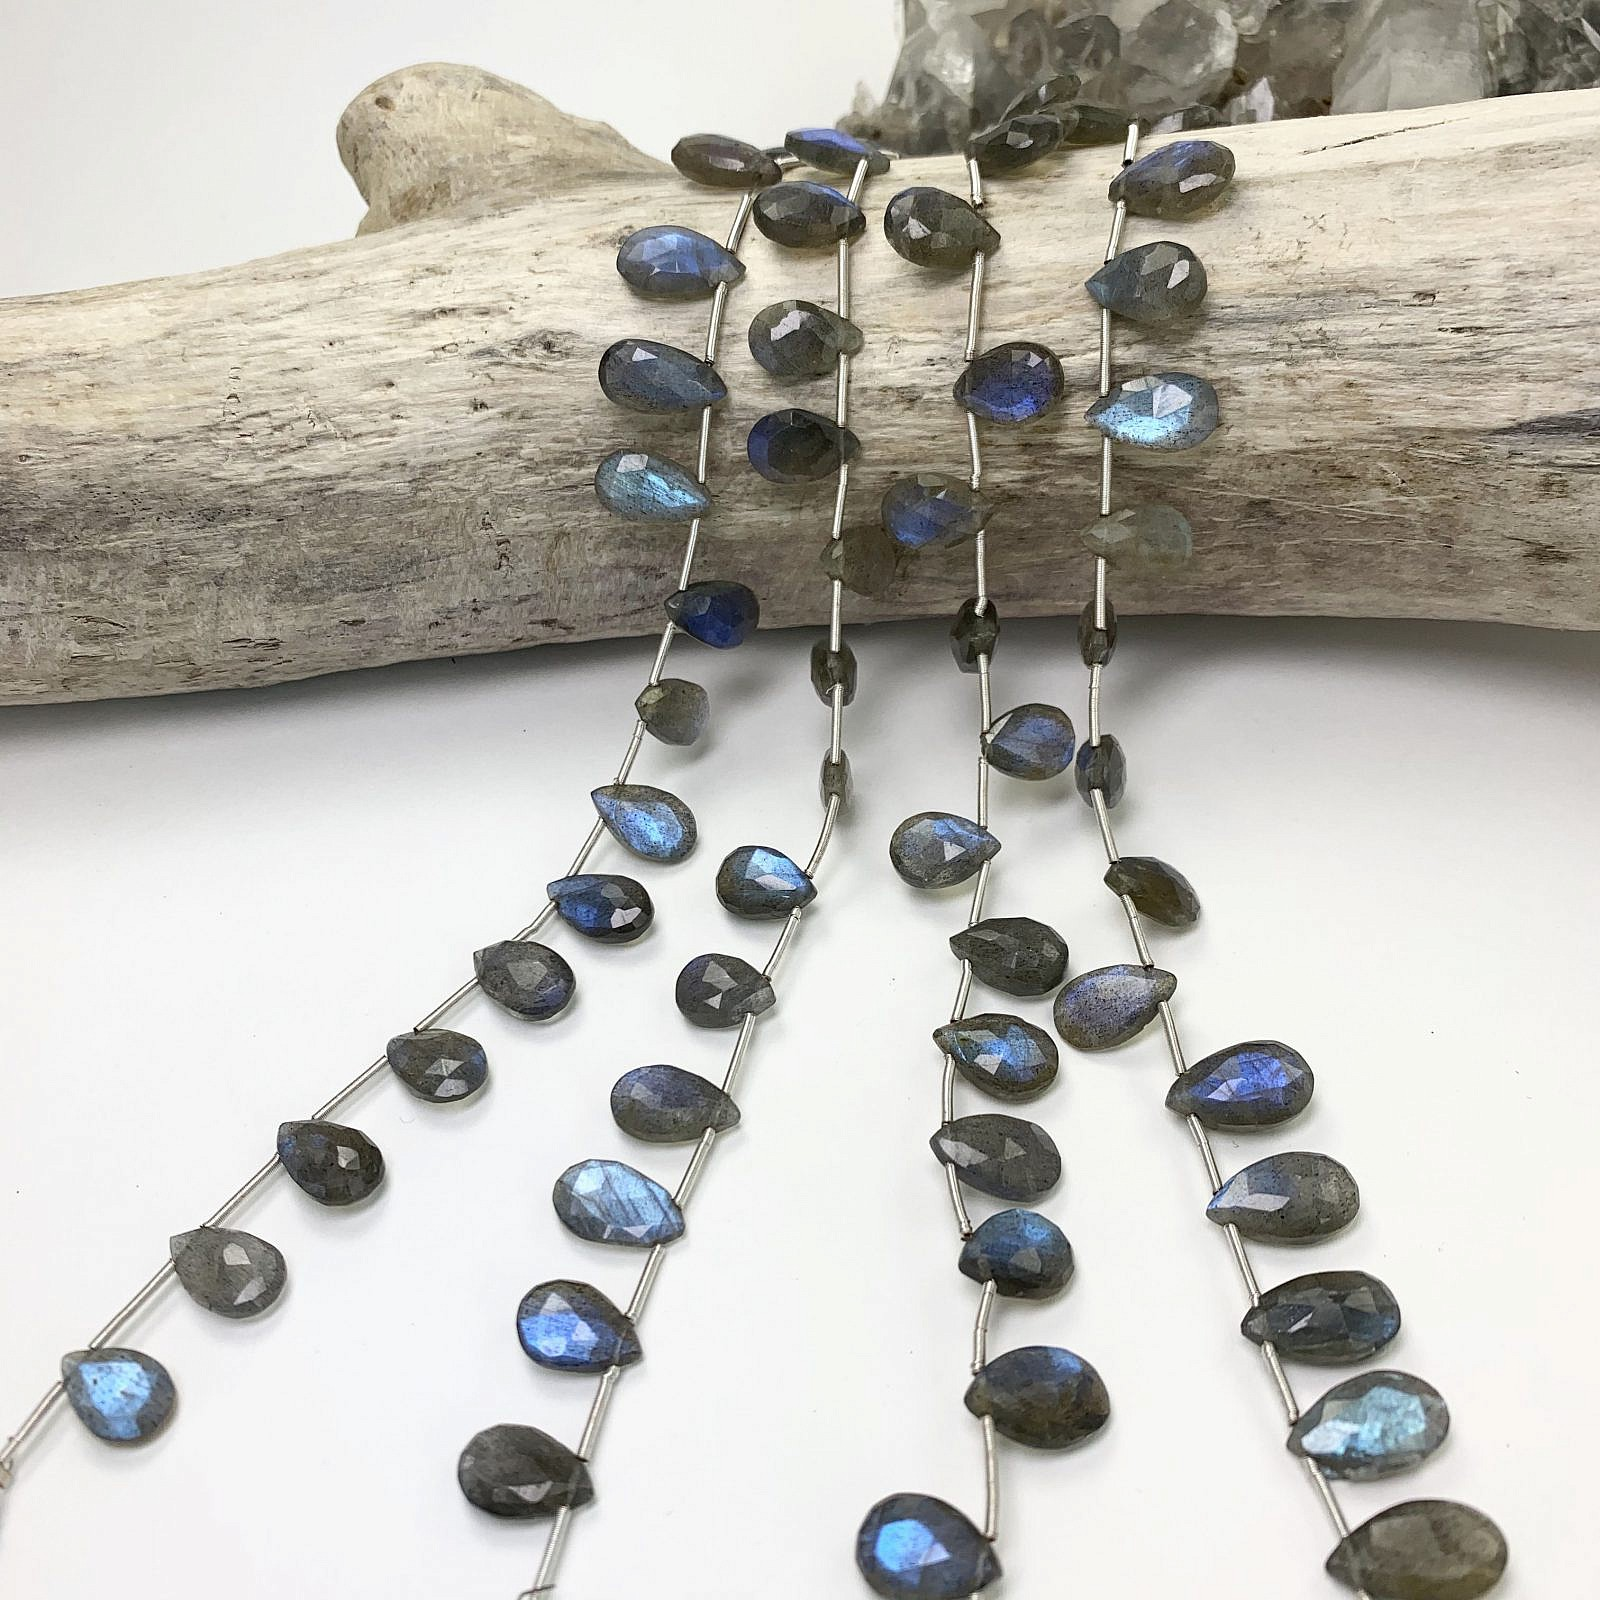 Labradorite Faceted LARGE Elongated Pear Briolettes-7.50 inches Strand-Stones measure-17x9-32x12mm-B3602